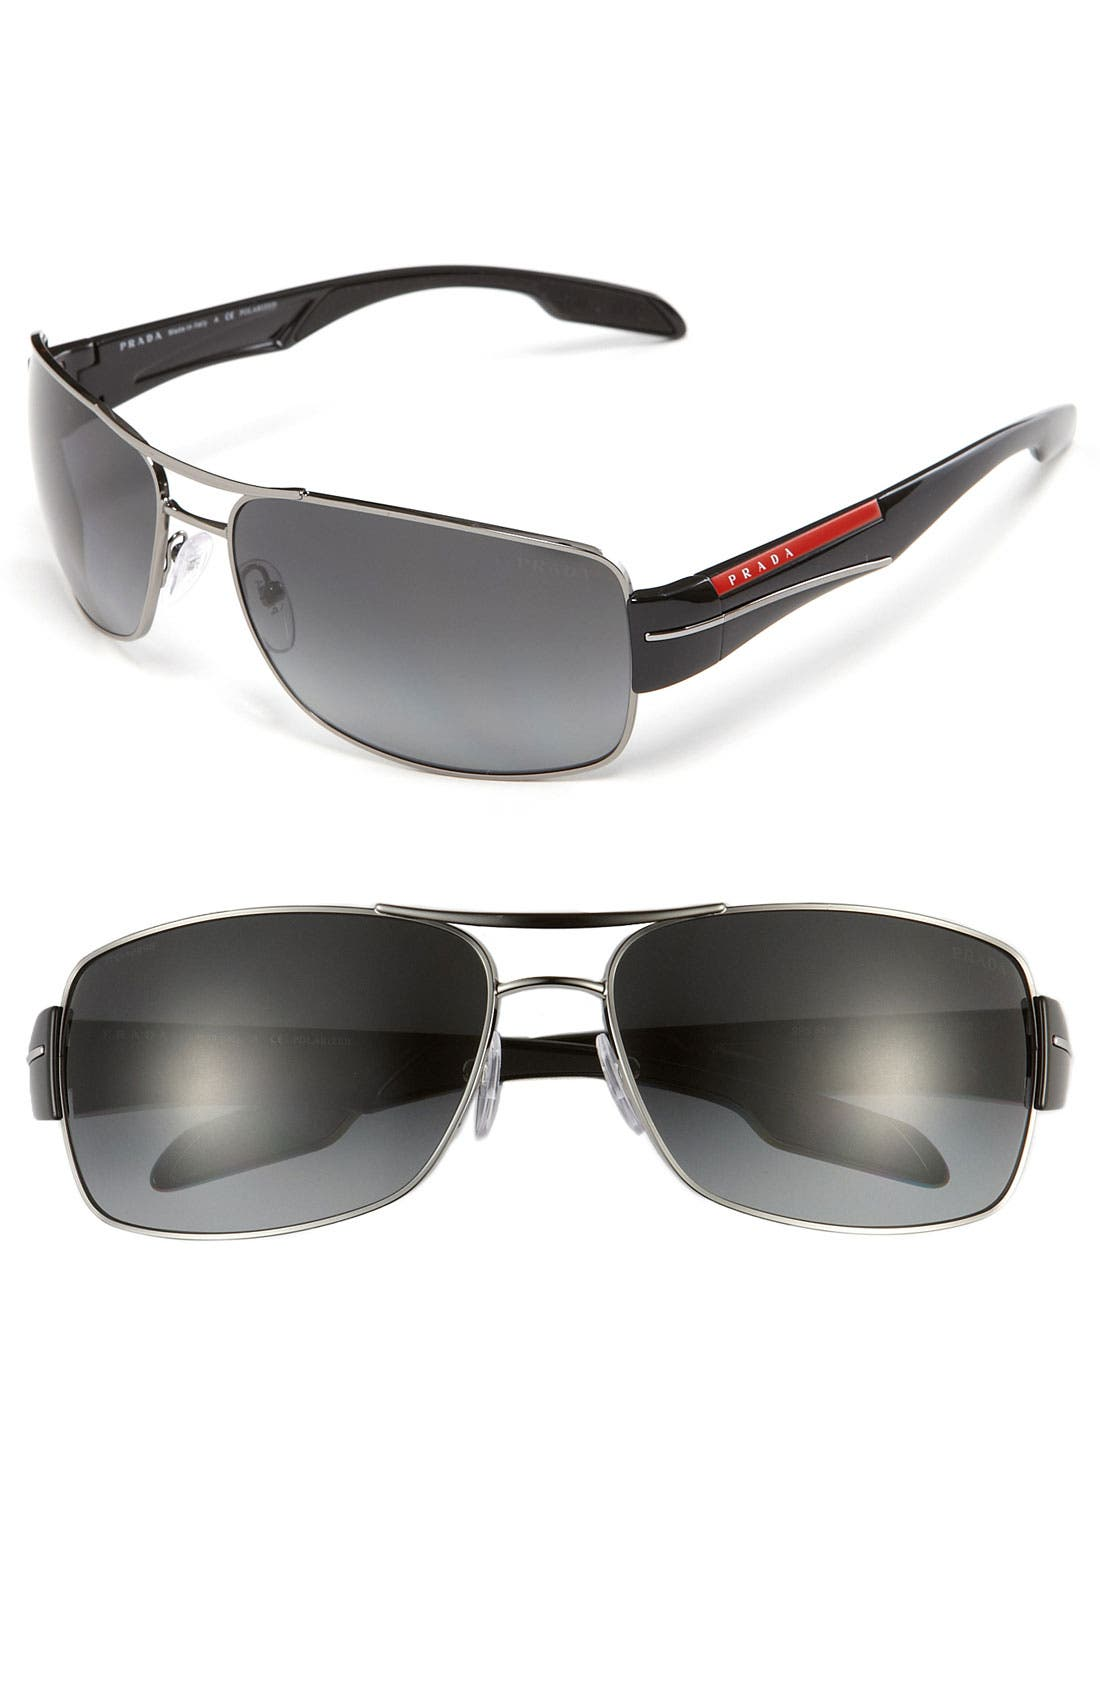 Alternate Image 1 Selected - Prada 65mm Sunglasses